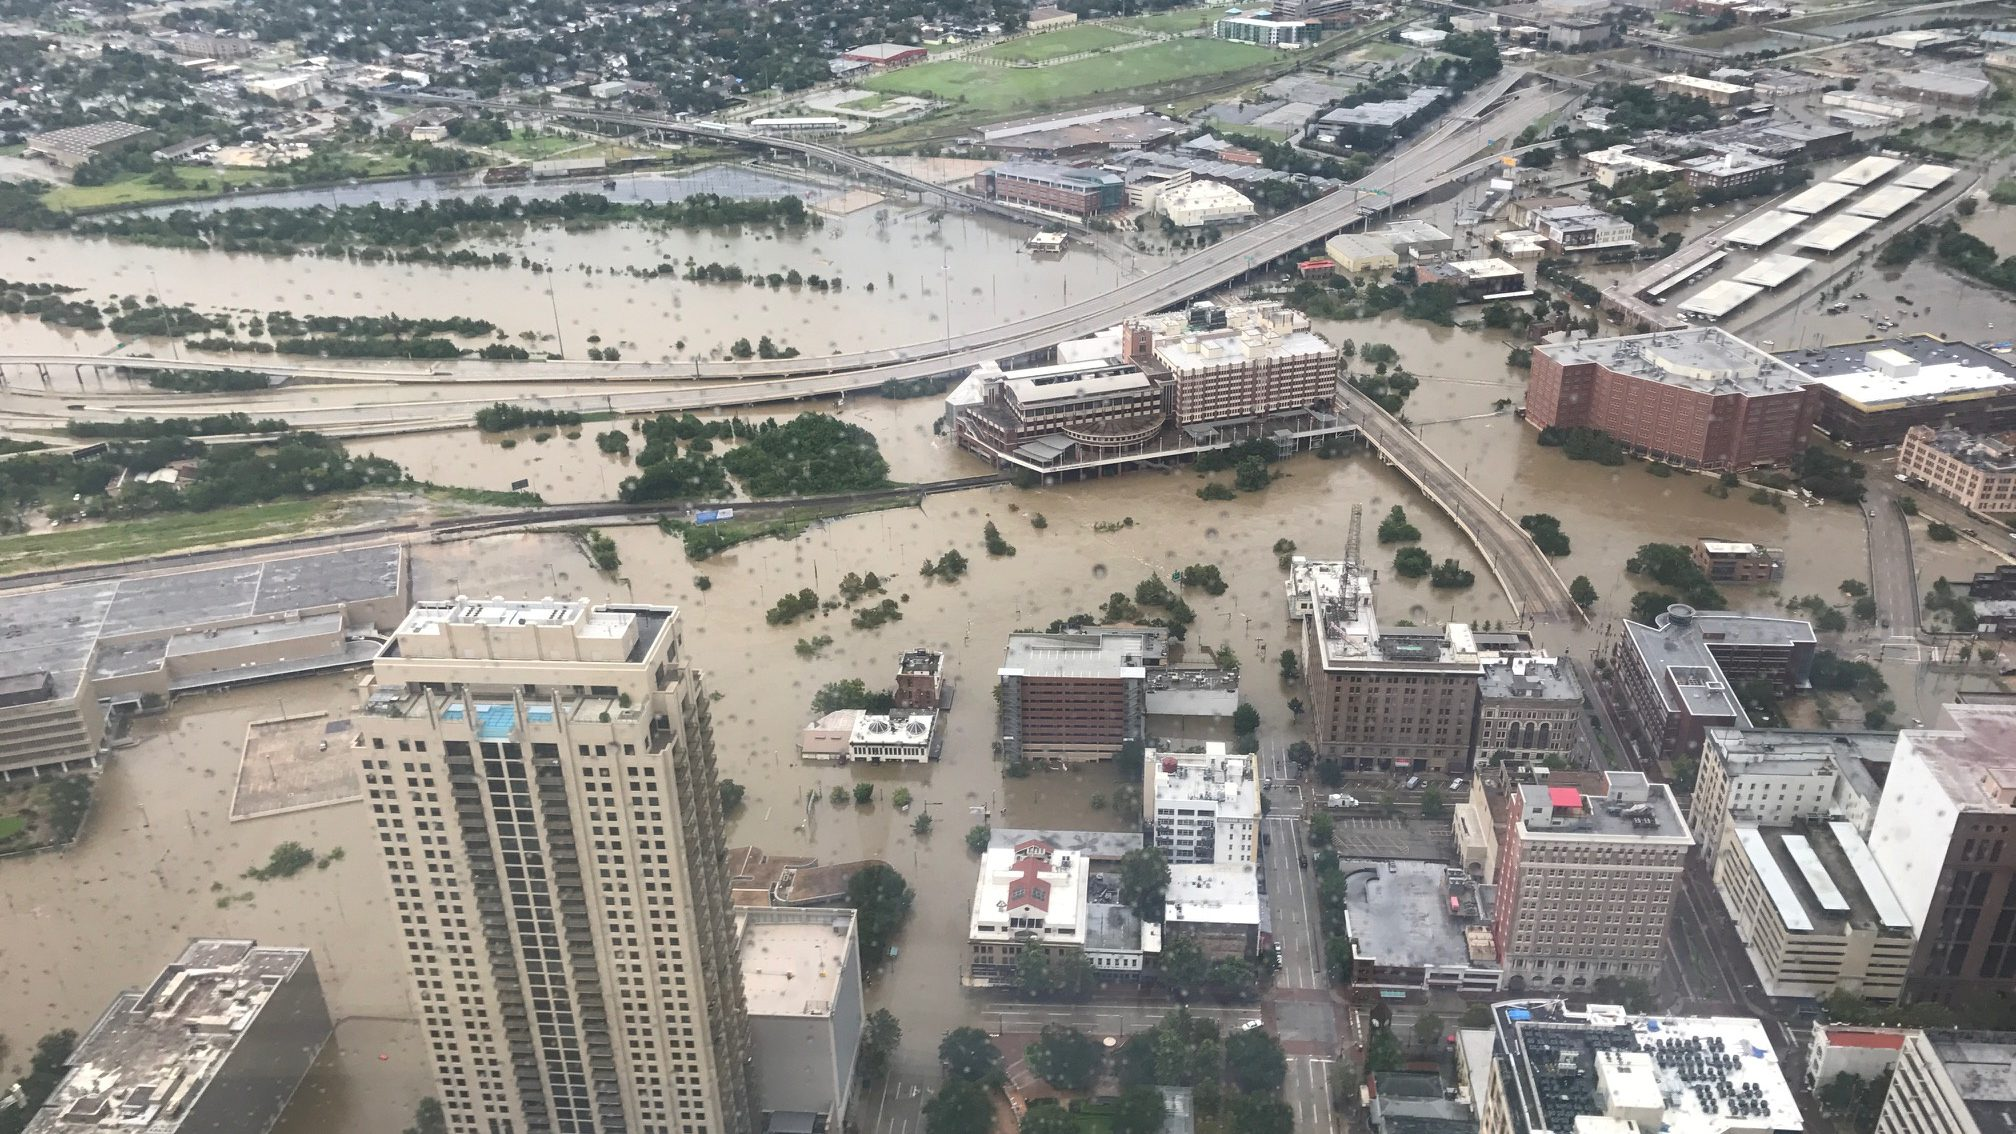 Flooded downtown is seen from JP Morgan Chase Tower after Hurricane Harvey inundated the Texas Gulf coast with rain causing widespread flooding, in Houston, Texas, U.S. August 27, 2017 in this picture obtained from social media. Mandatory credit: Christian Tycksen via REUTERS ATTENTION EDITORS - THIS IMAGE HAS BEEN SUPPLIED BY A THIRD PARTY. MANDATORY CREDIT. NO RESALES. NO ARCHIVES - RC1806C16EF0